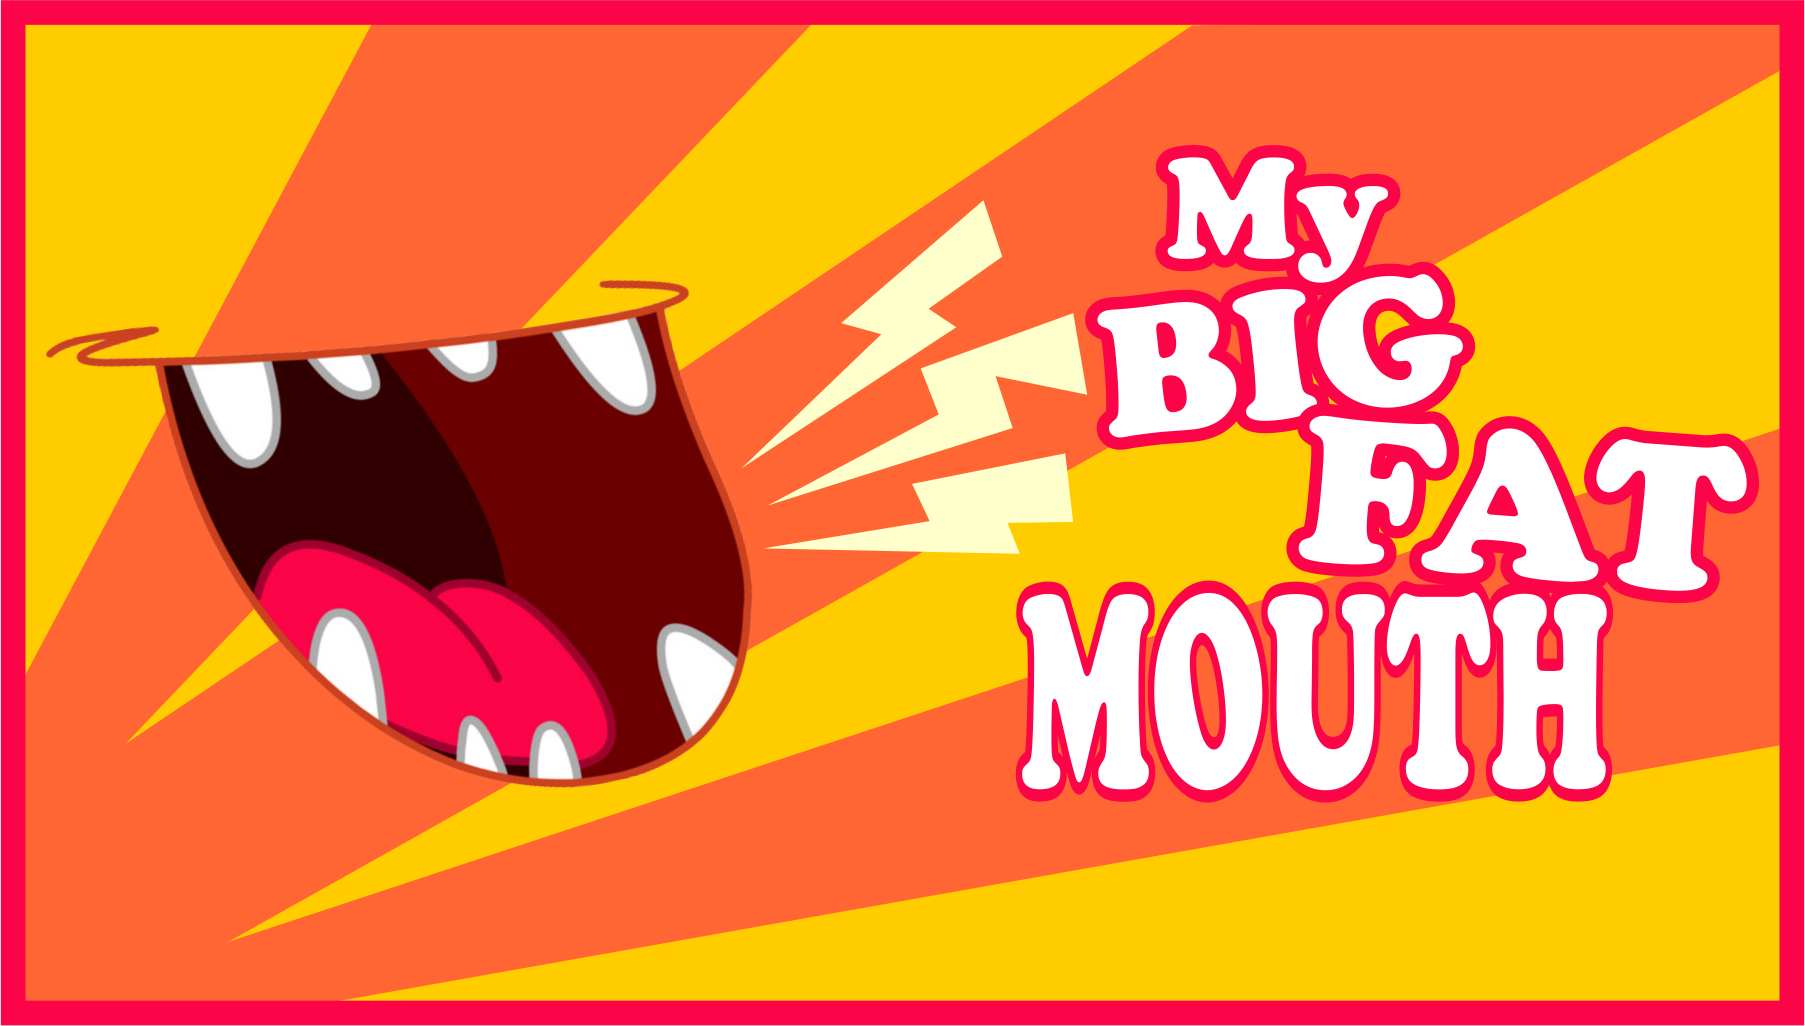 My Big Fat Mouth message series logo